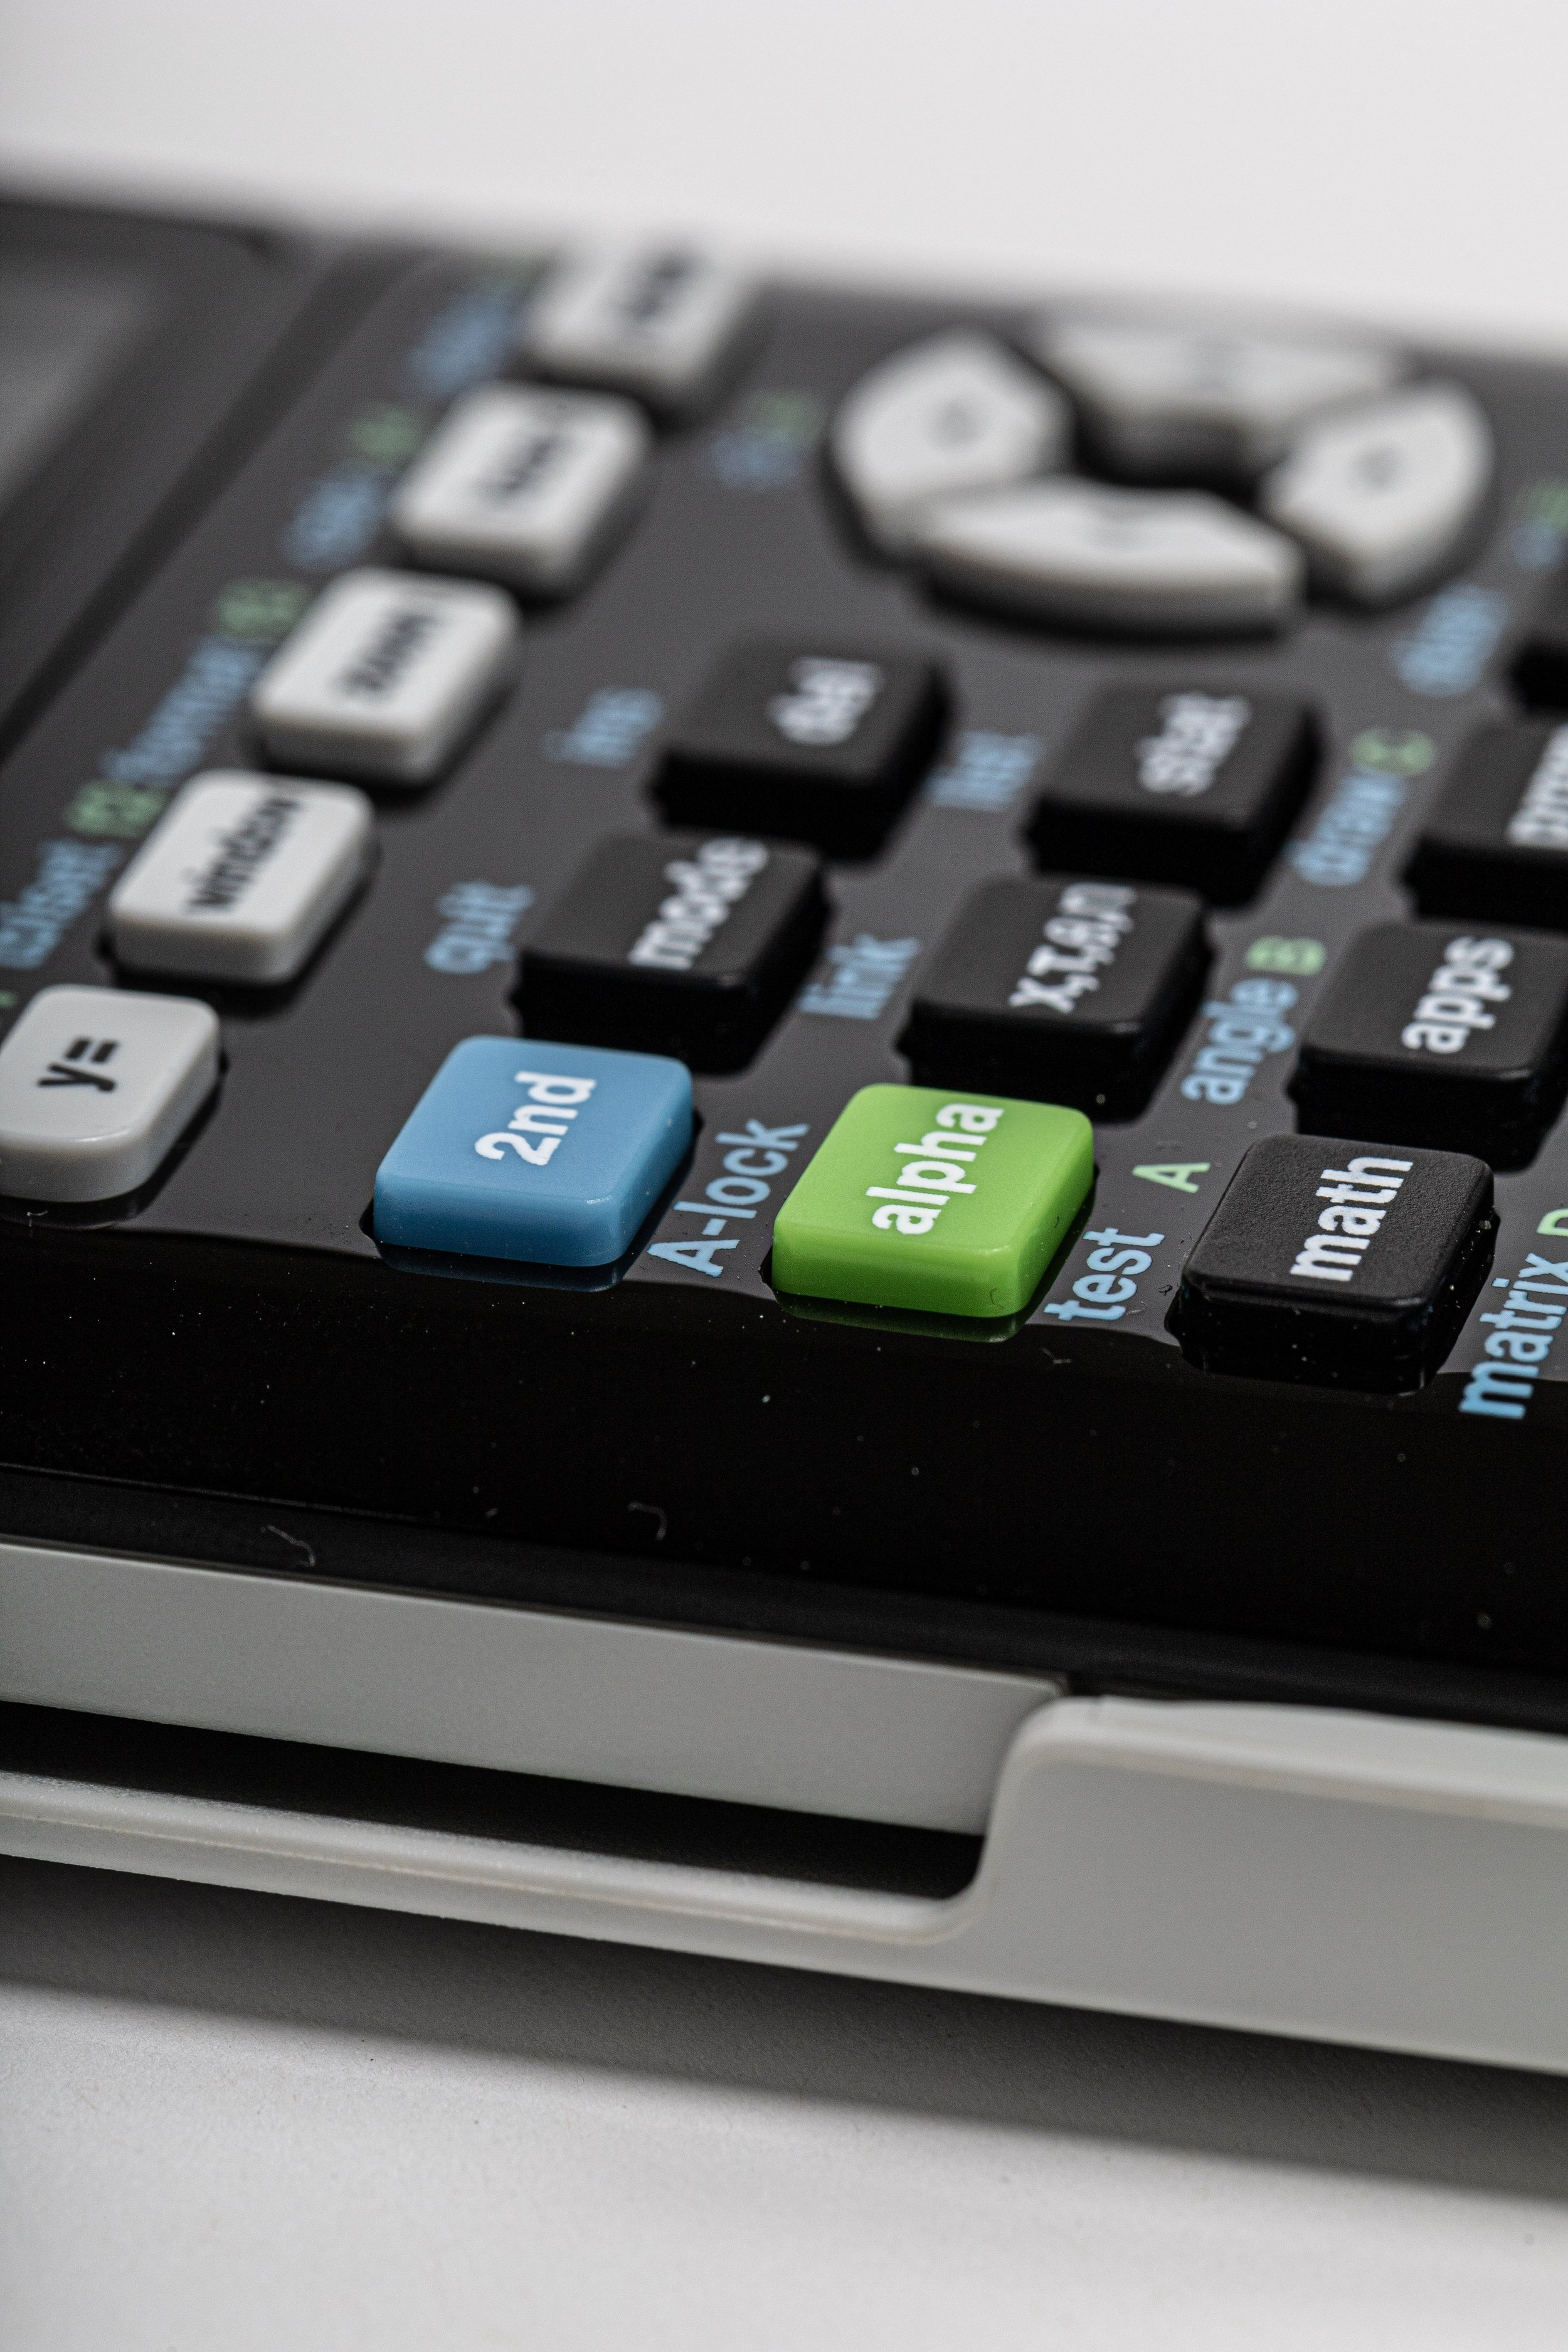 Mortgage Calculators don't really know you. - Contact us and we can talk about solutions to fit your needs.